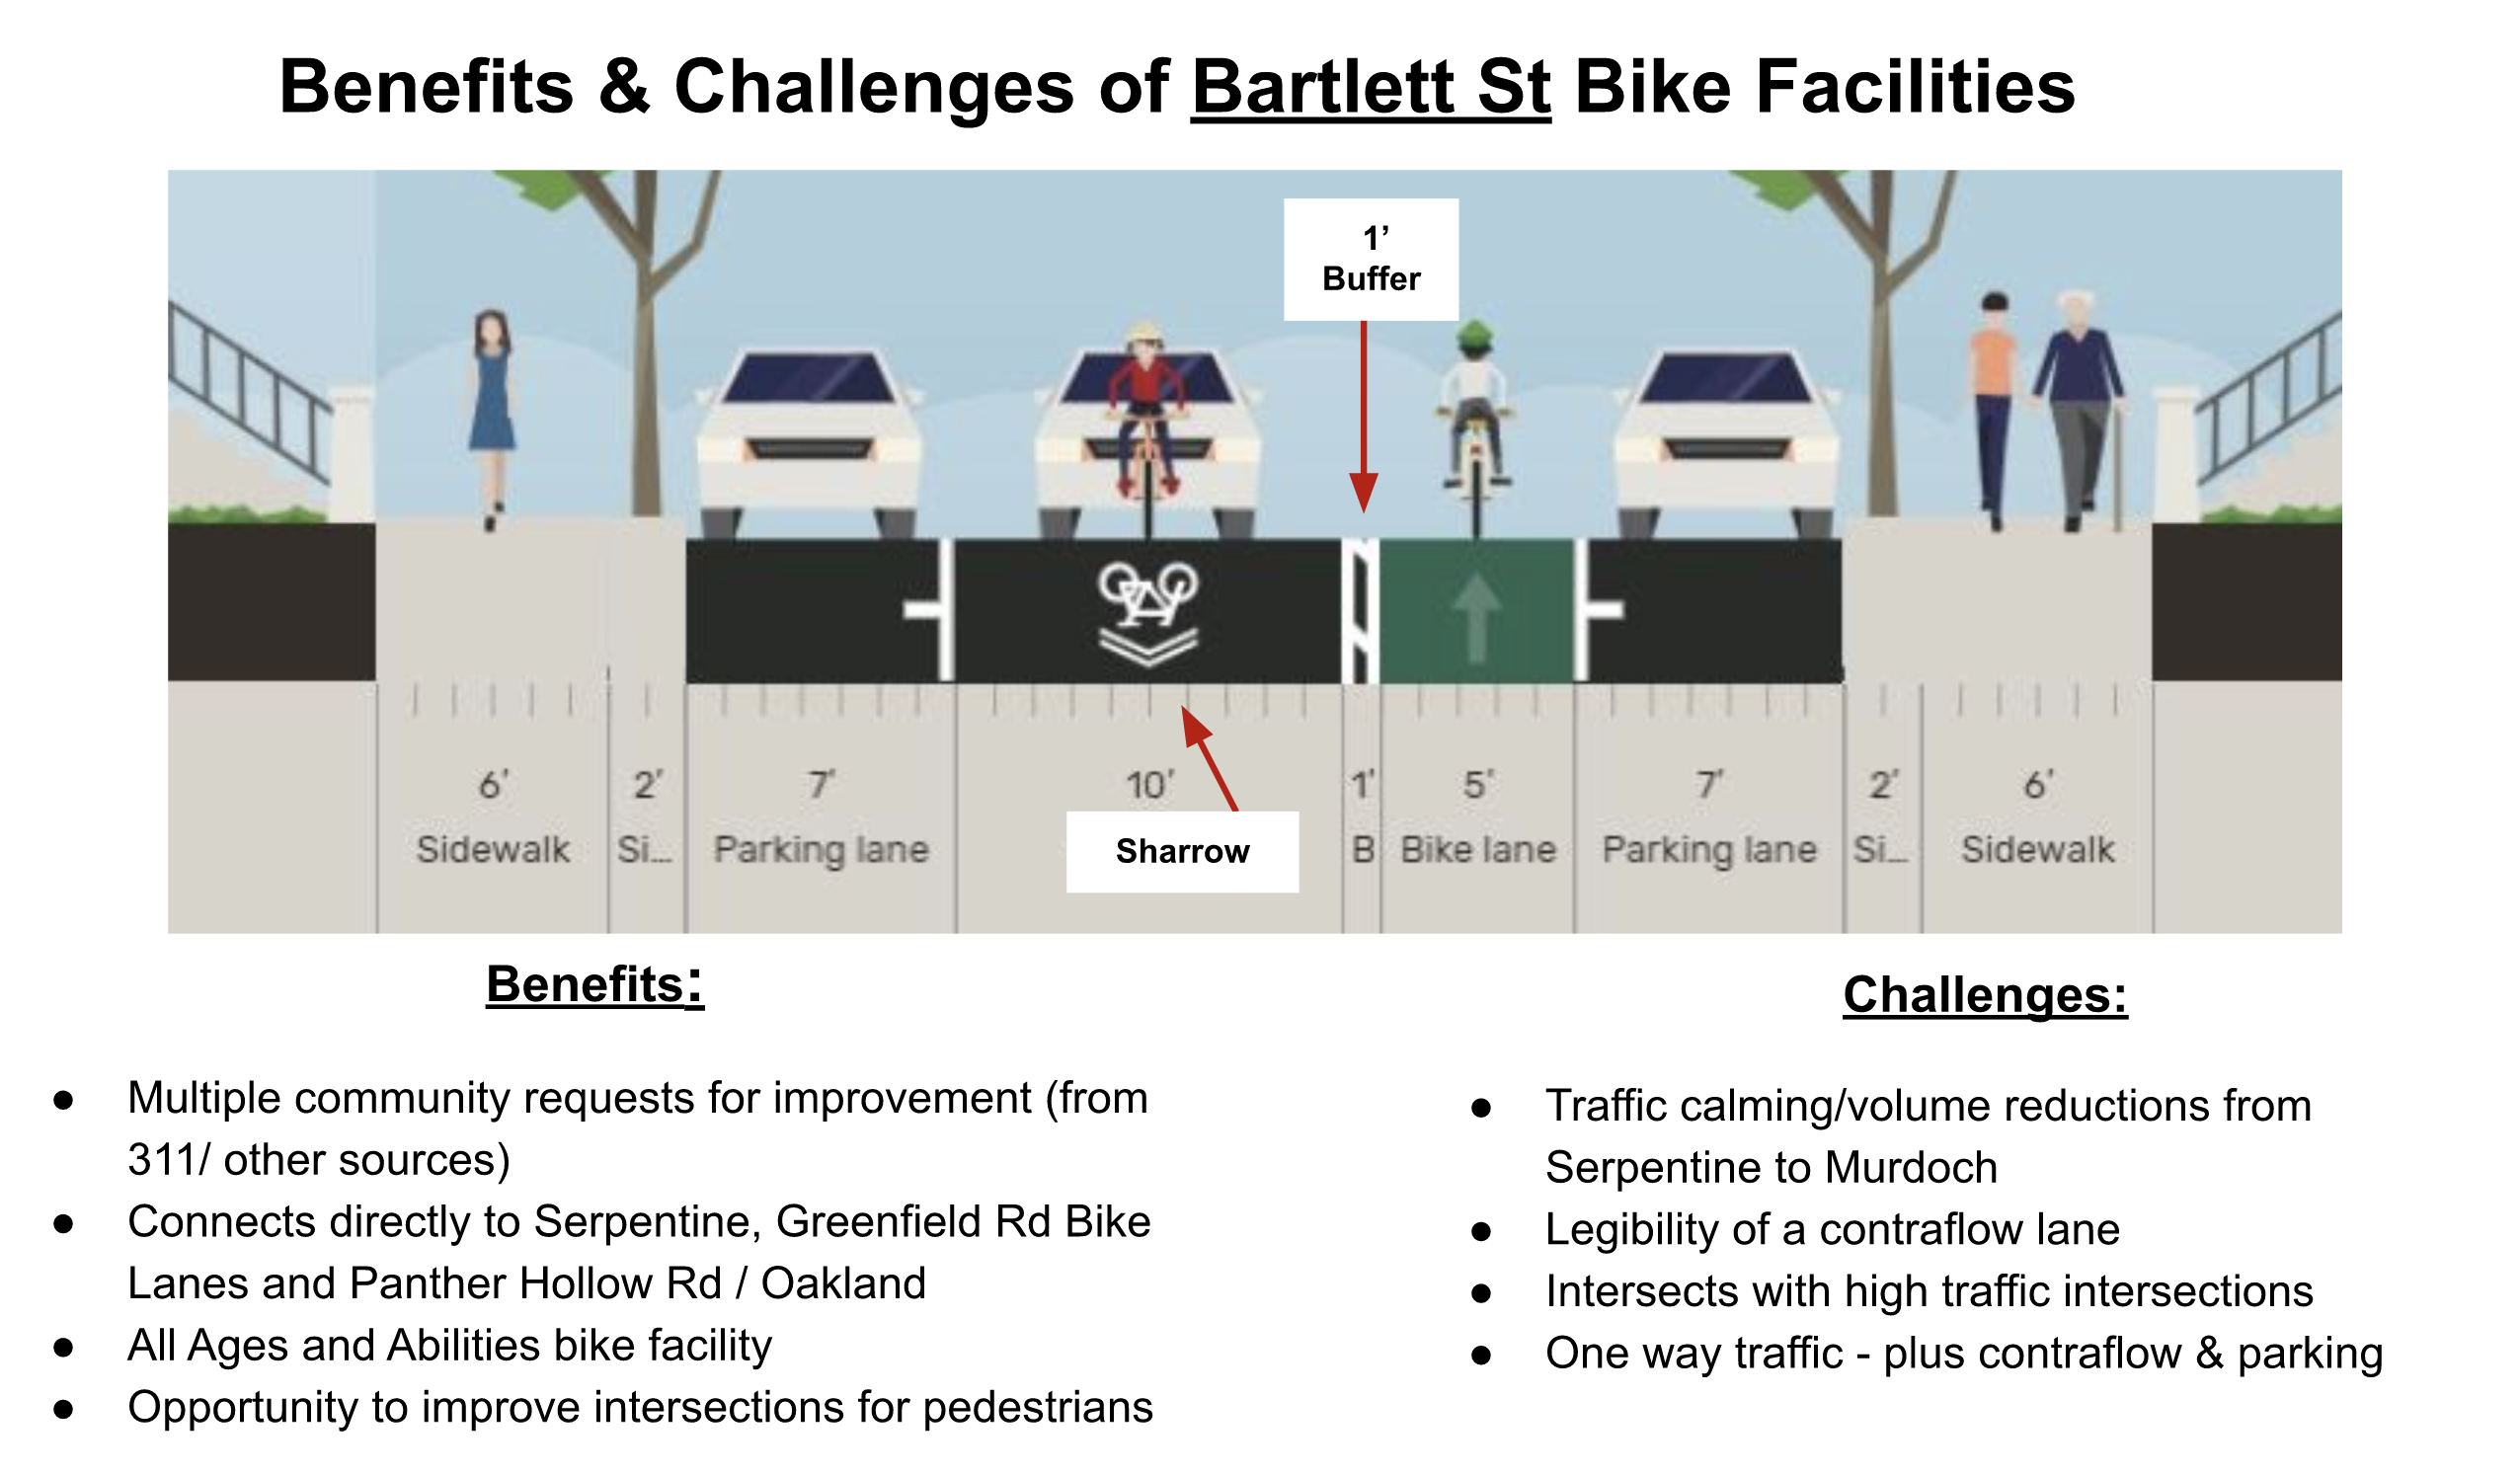 Image shows a cross section of the proposed Bartlett street with 8 feet of sidewalk space on each side, a 7 foot parking lane, a 10 foot travel lane with a sharrow, a 1 foot buffer, a 5 foot contra flow bike lane and a 7 foot parking lane